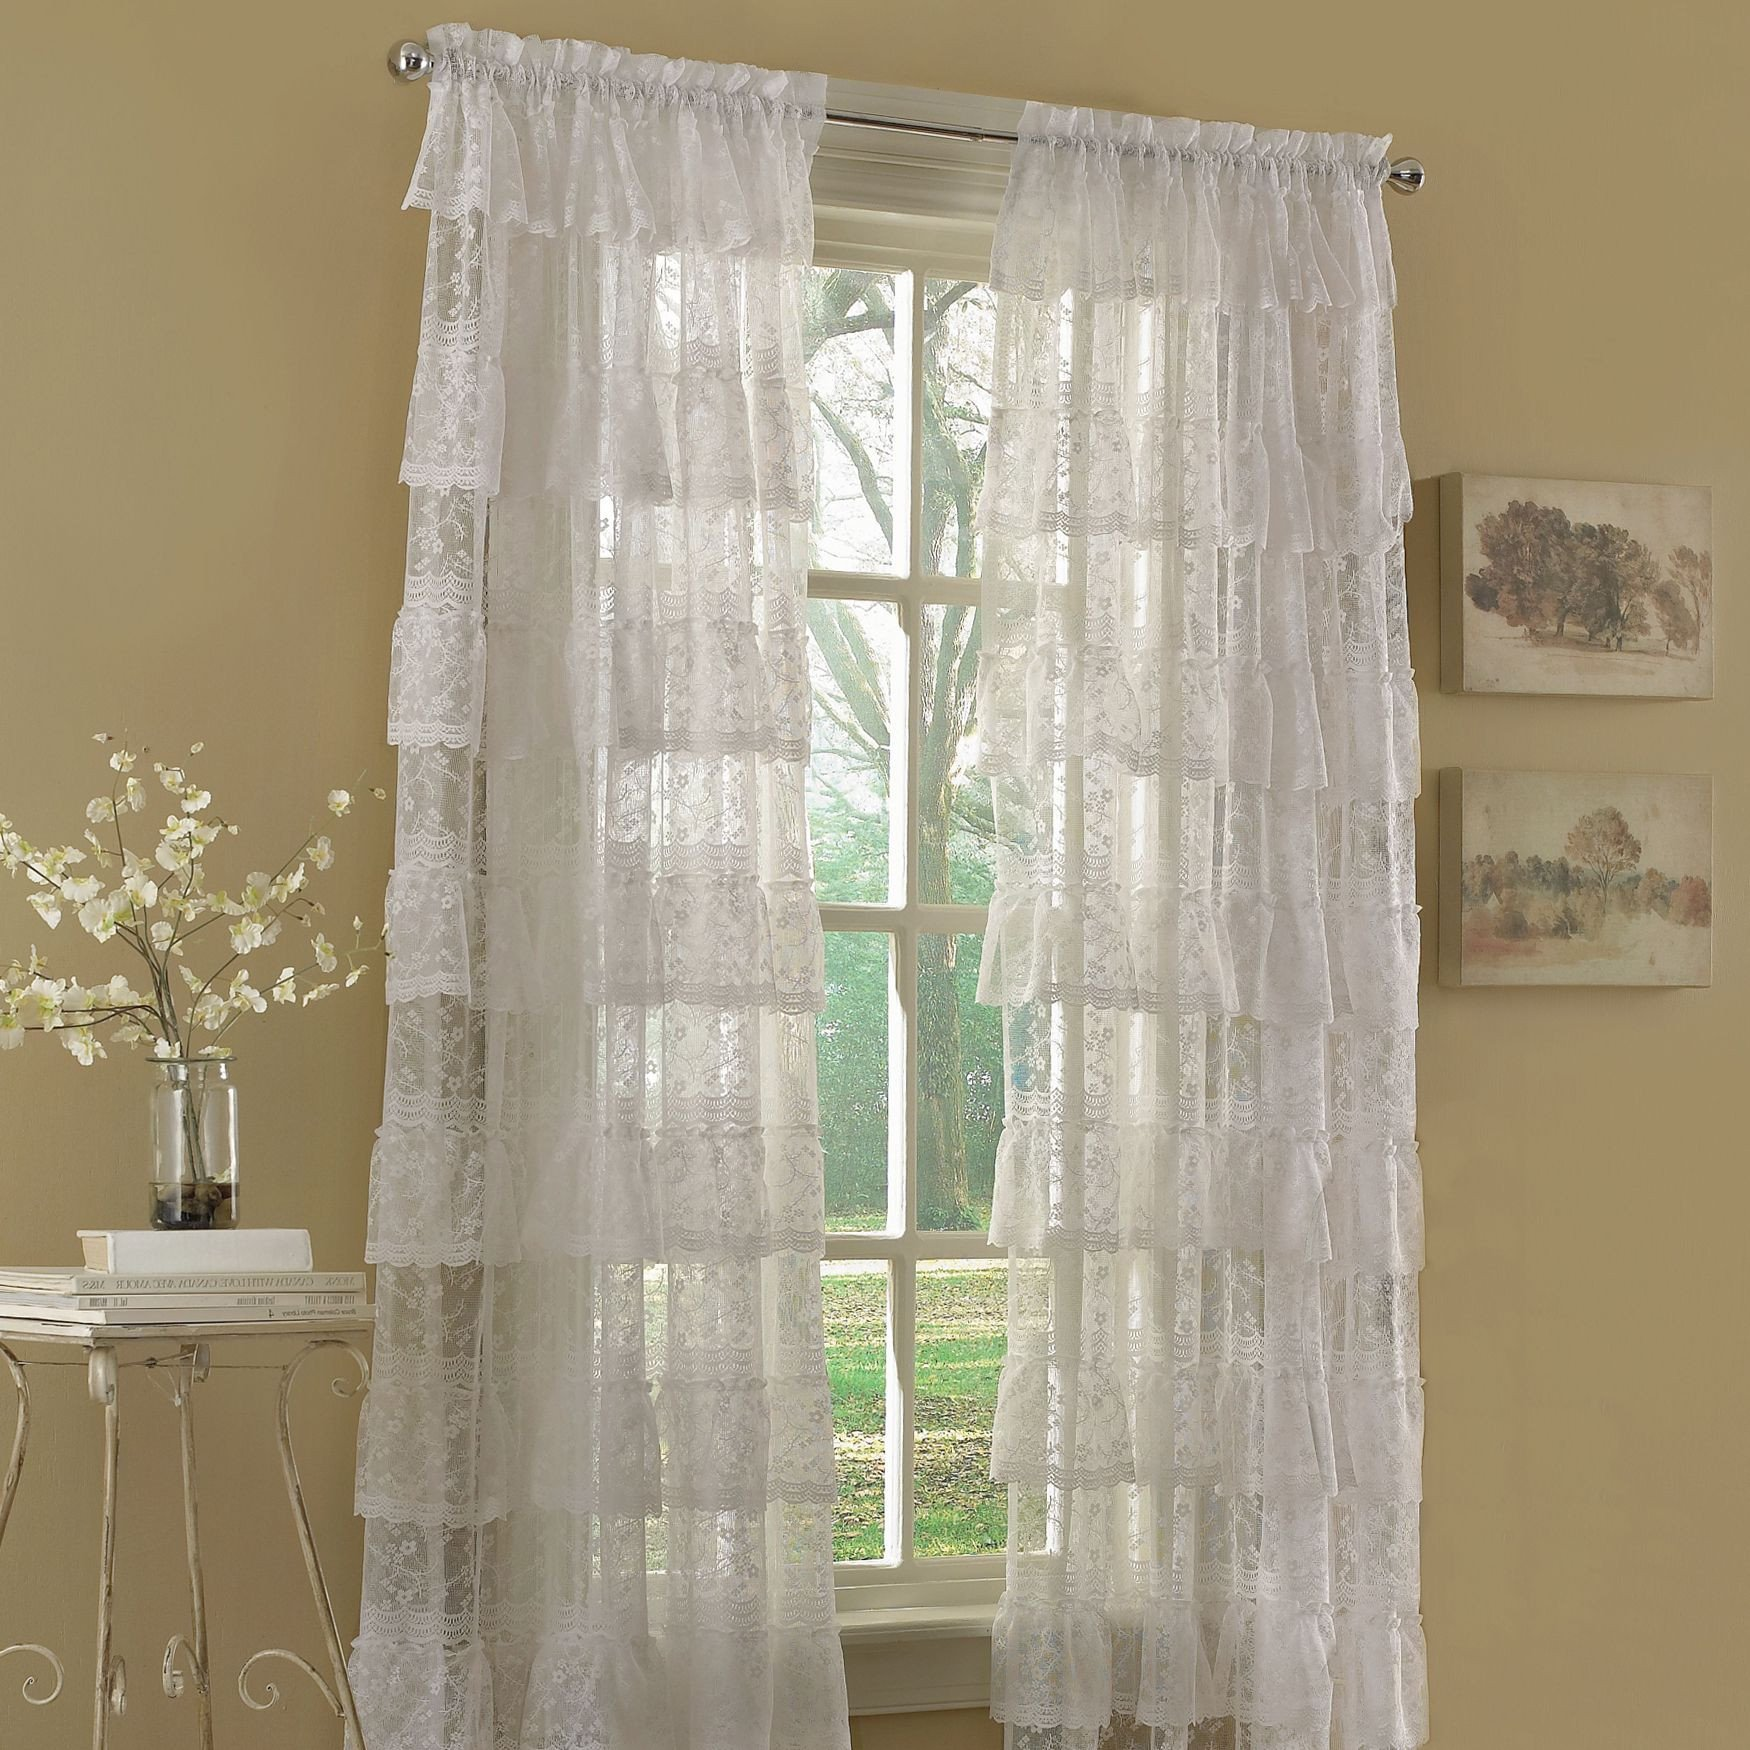 Curtains for Small Bedroom Windows Best Of Priscilla Bridal Lace Panels